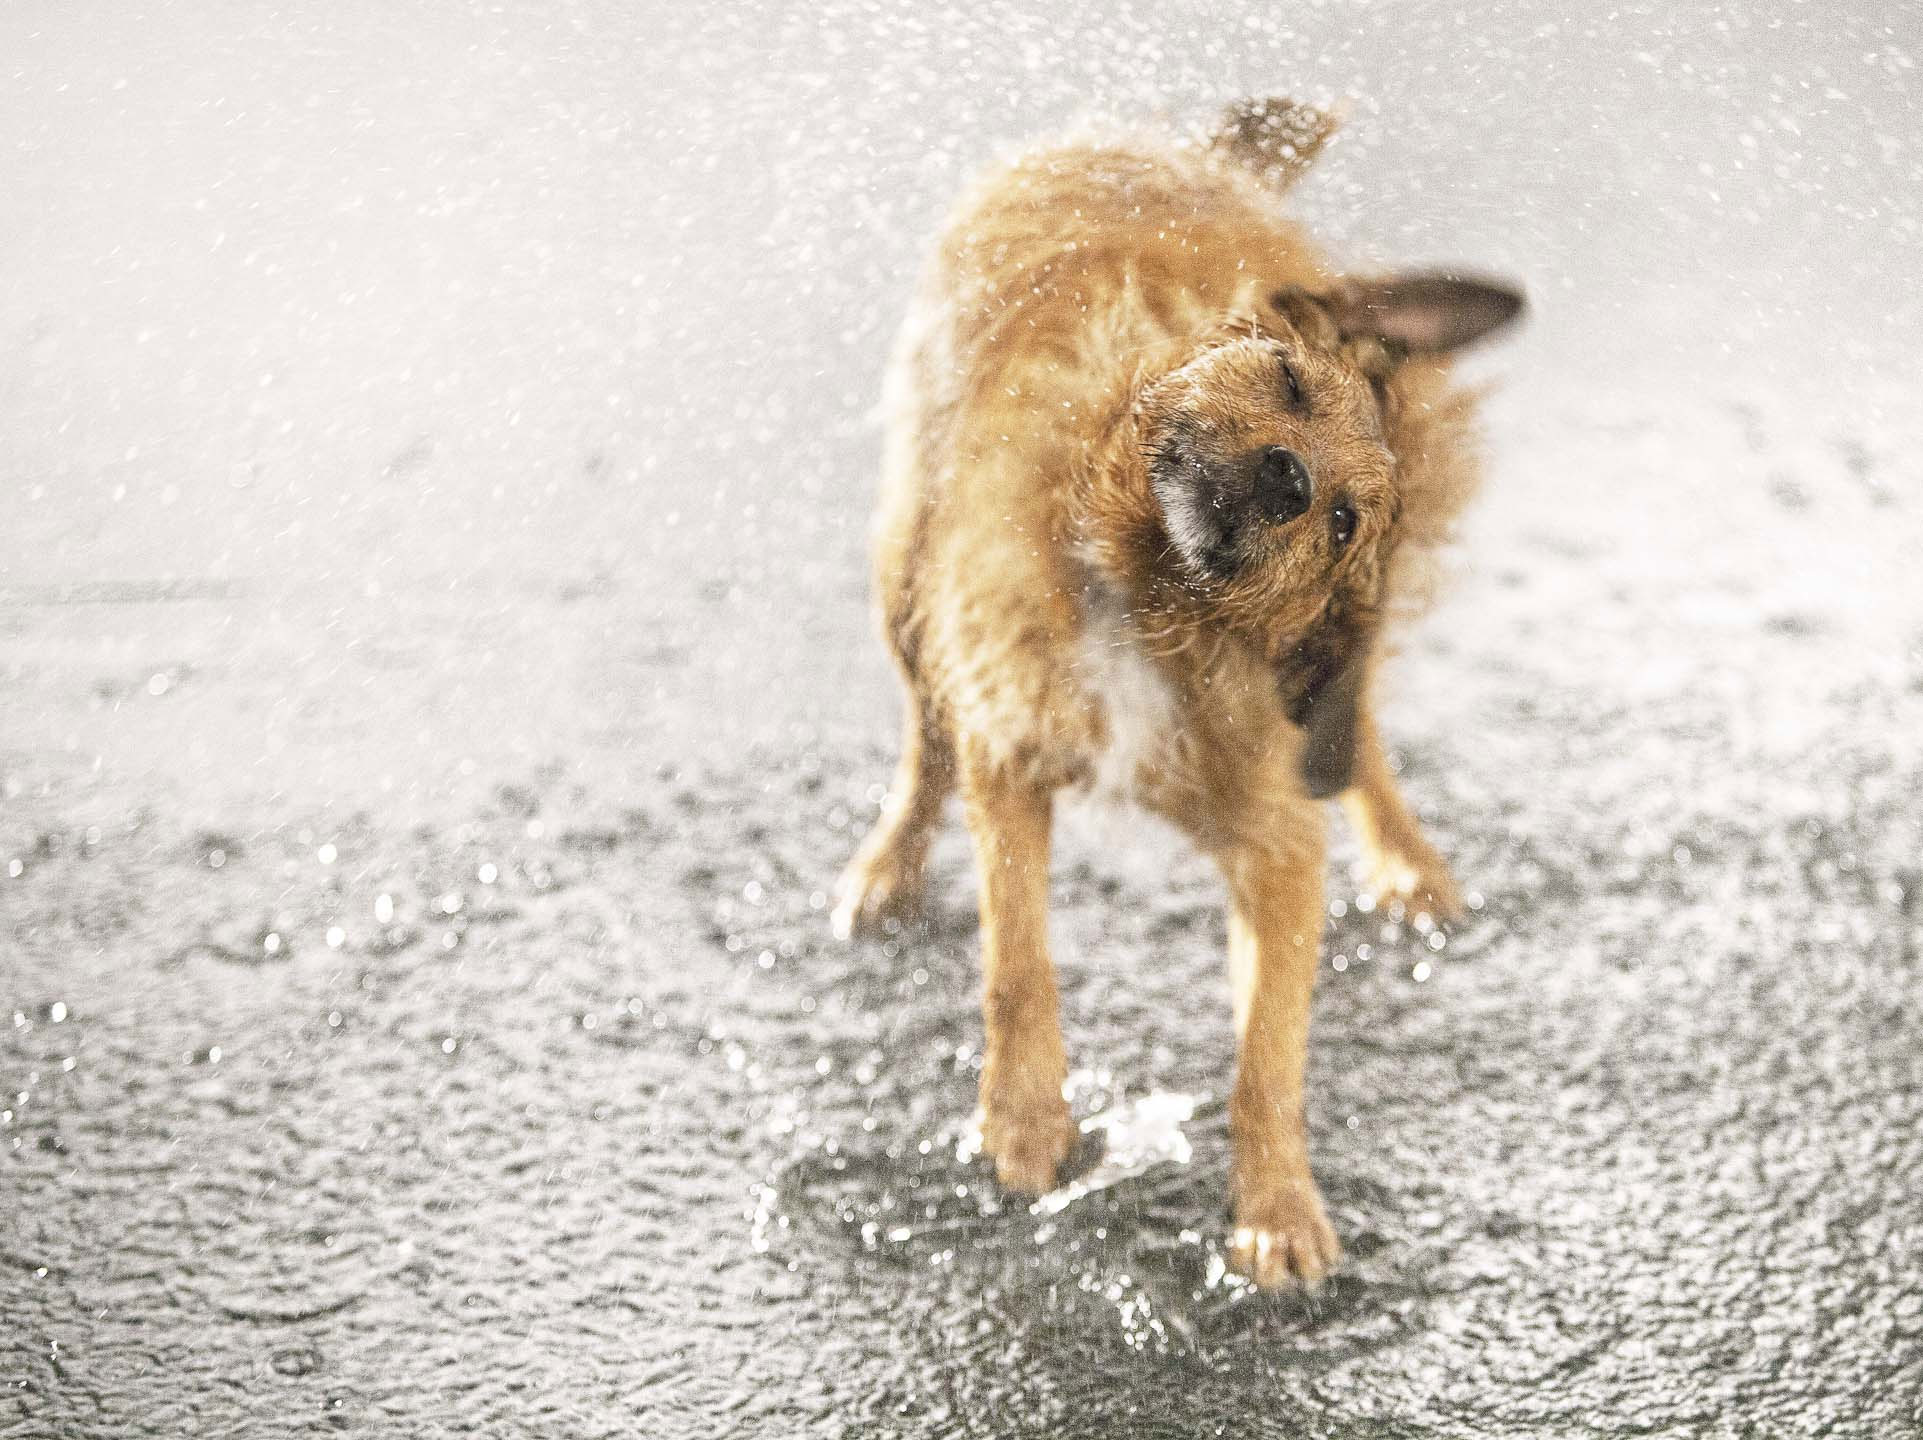 Alex Howe animal wet dog shake in rain puddle